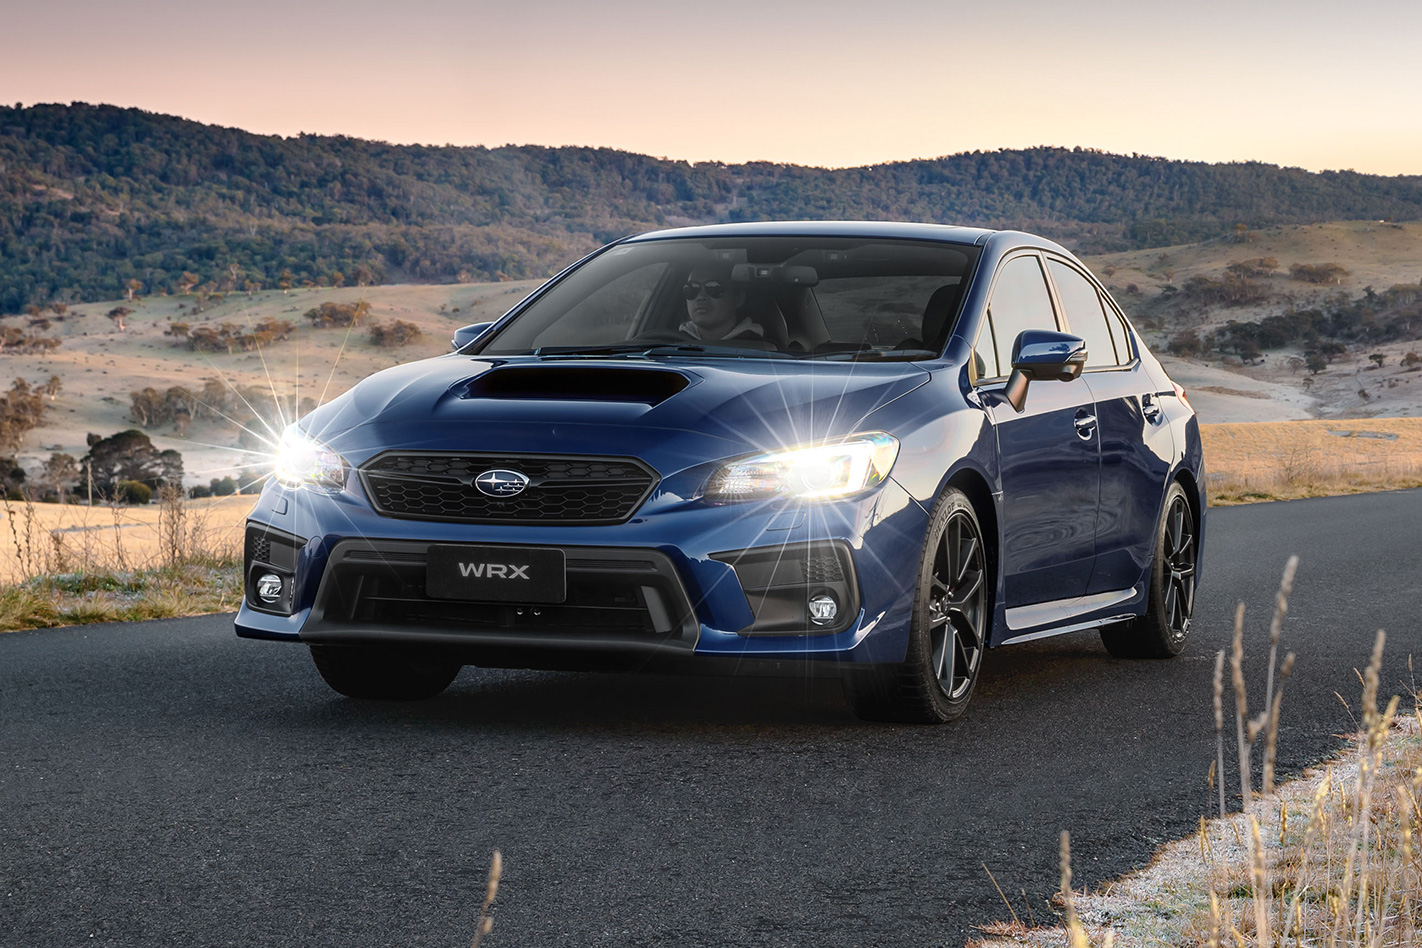 2018 Subaru Wrx And Sti Price Features Announced 19 Inch Wheels On All Cvt Automatic Variants Also Gain Eyesight Driver Assist Package With Collision Prevention Adaptive Cruise Control As Well An Electronic